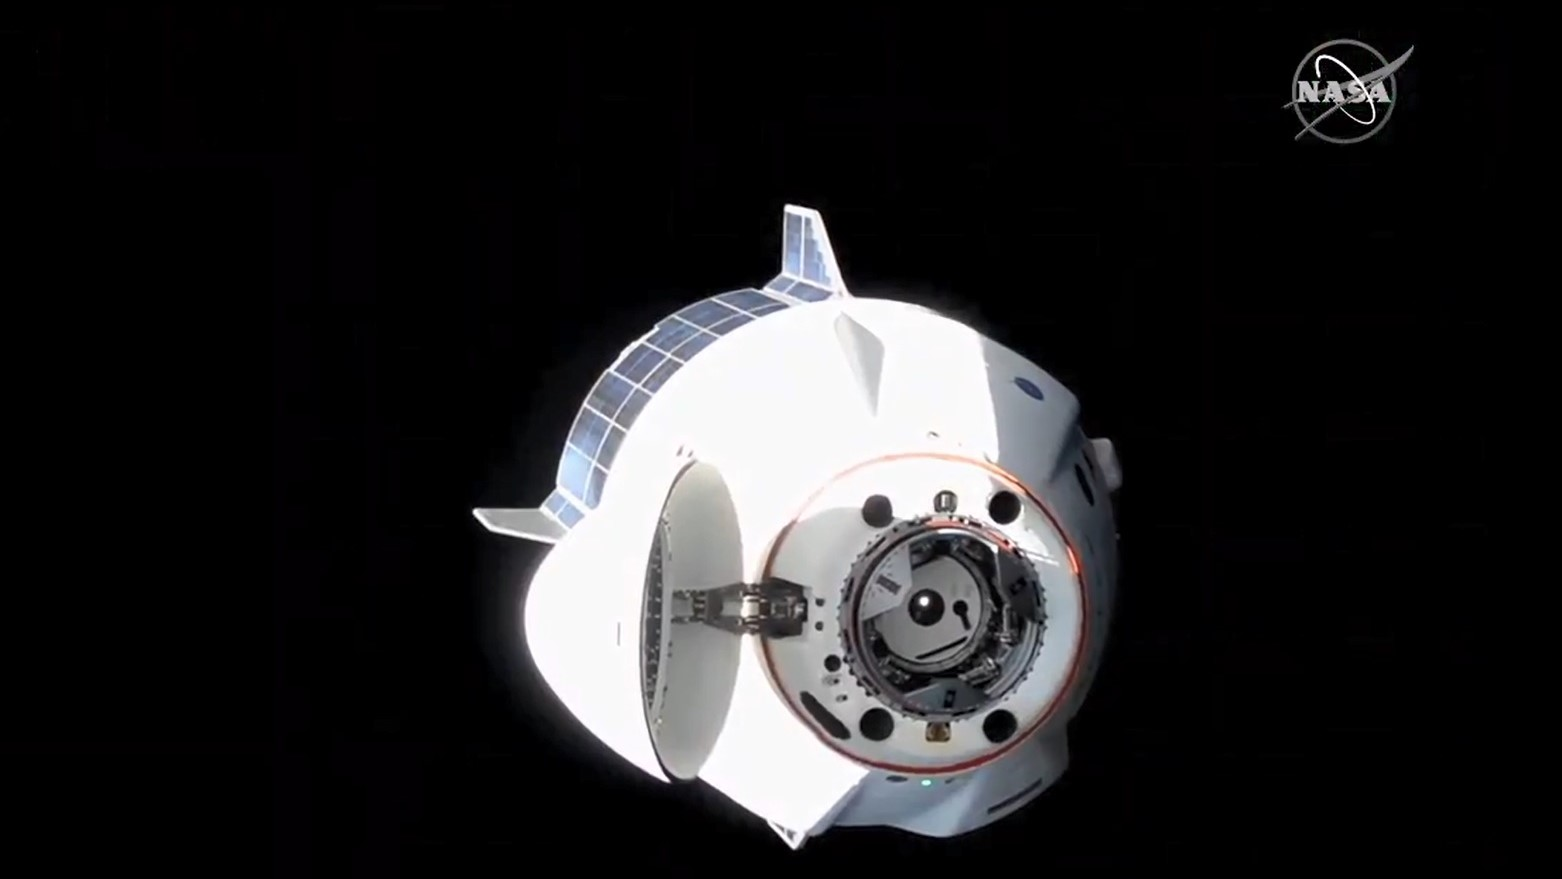 SpaceX's Crew-1 Dragon and its four-person astronaut crew relocated from the forward docking port on the Harmony module to the space-facing port in an effort to prepare for the arrival of Crew-2 and CRS-22 in the coming weeks and months. Credit: NASA